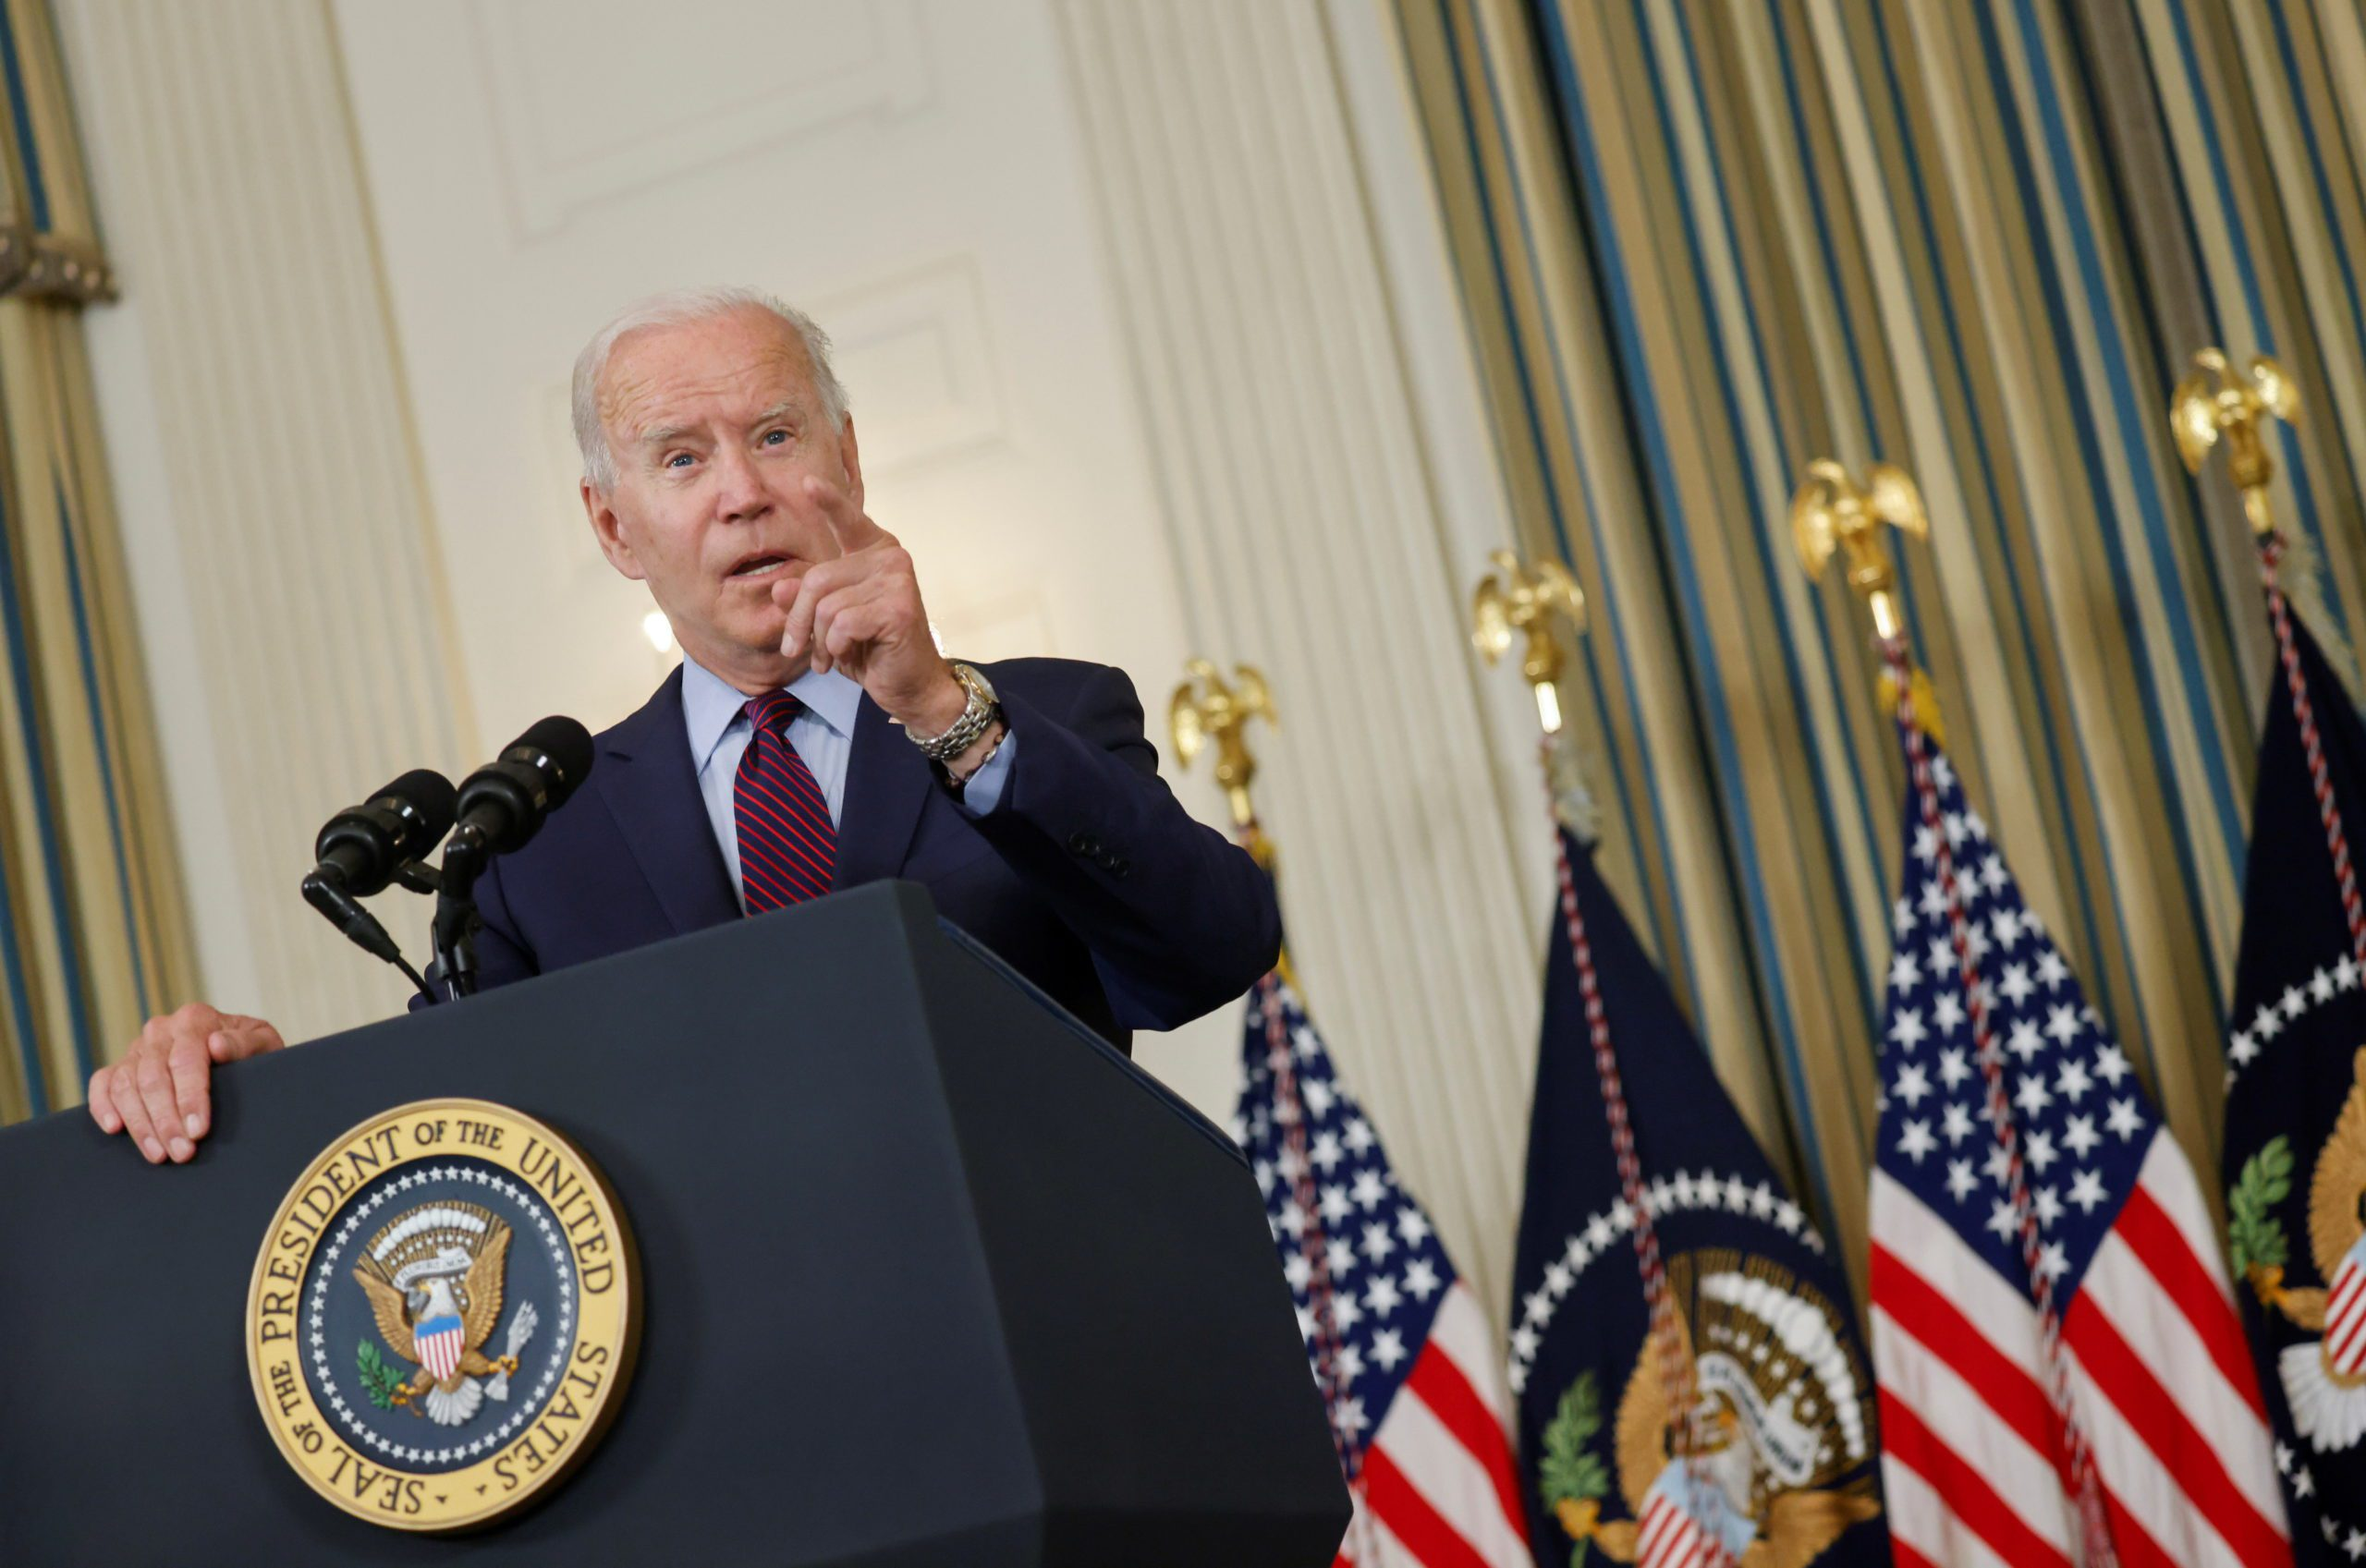 Biden Reverses Trump's Policy Of Terrorizing Immigrants With Workplace Raids